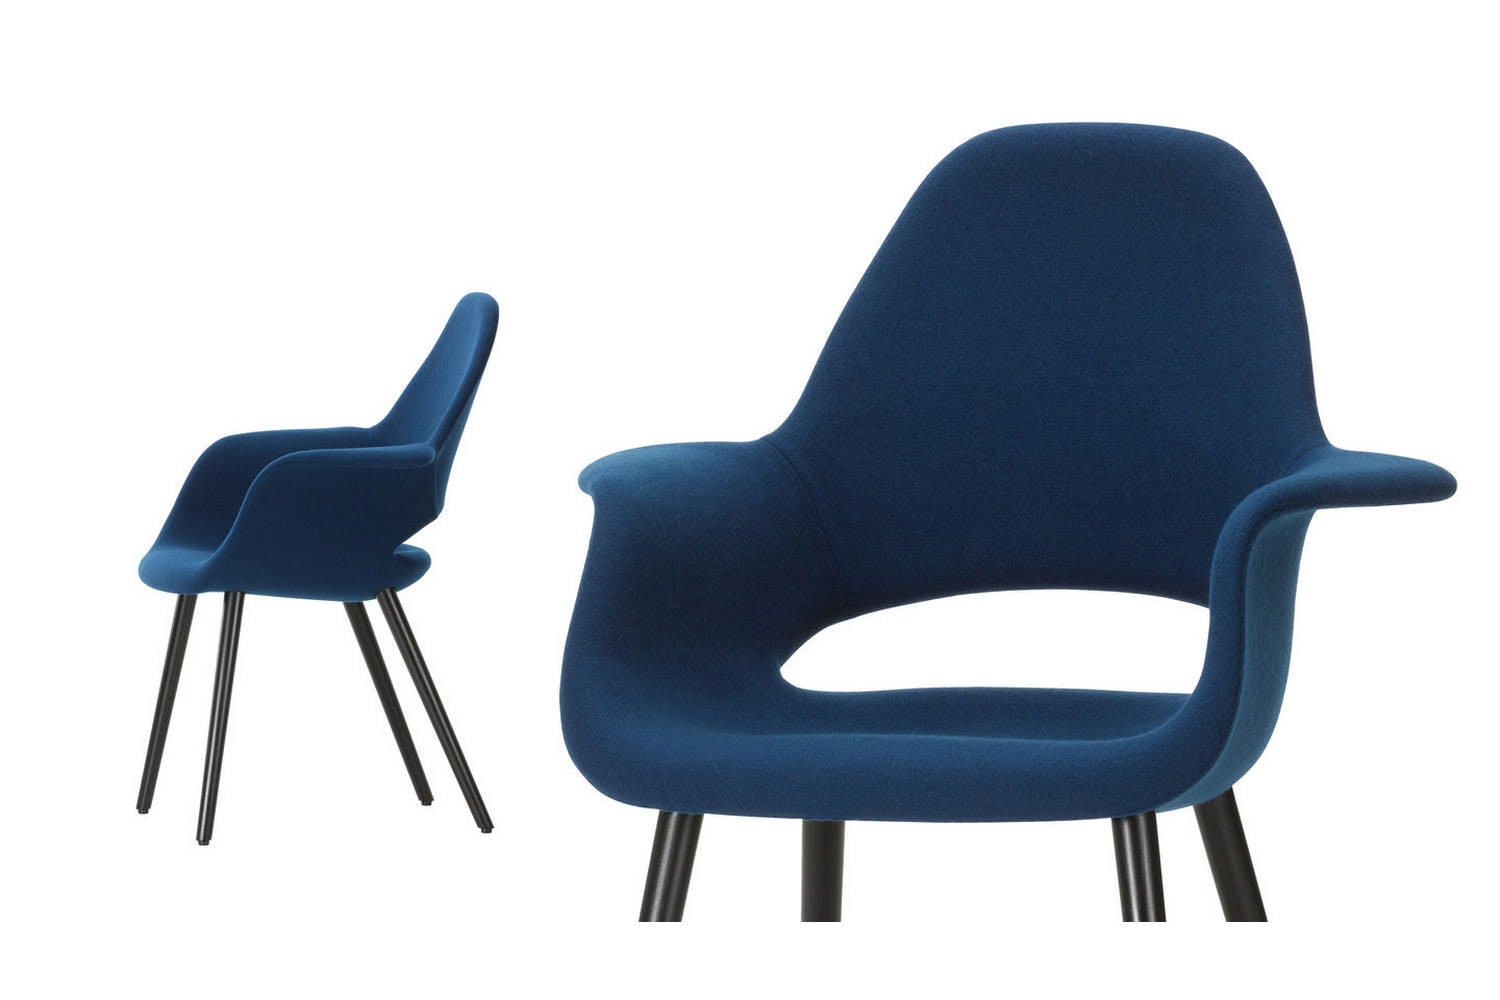 Organic Conference Chair with Arms by Charles Eames & Eero Saarinen for Vitra